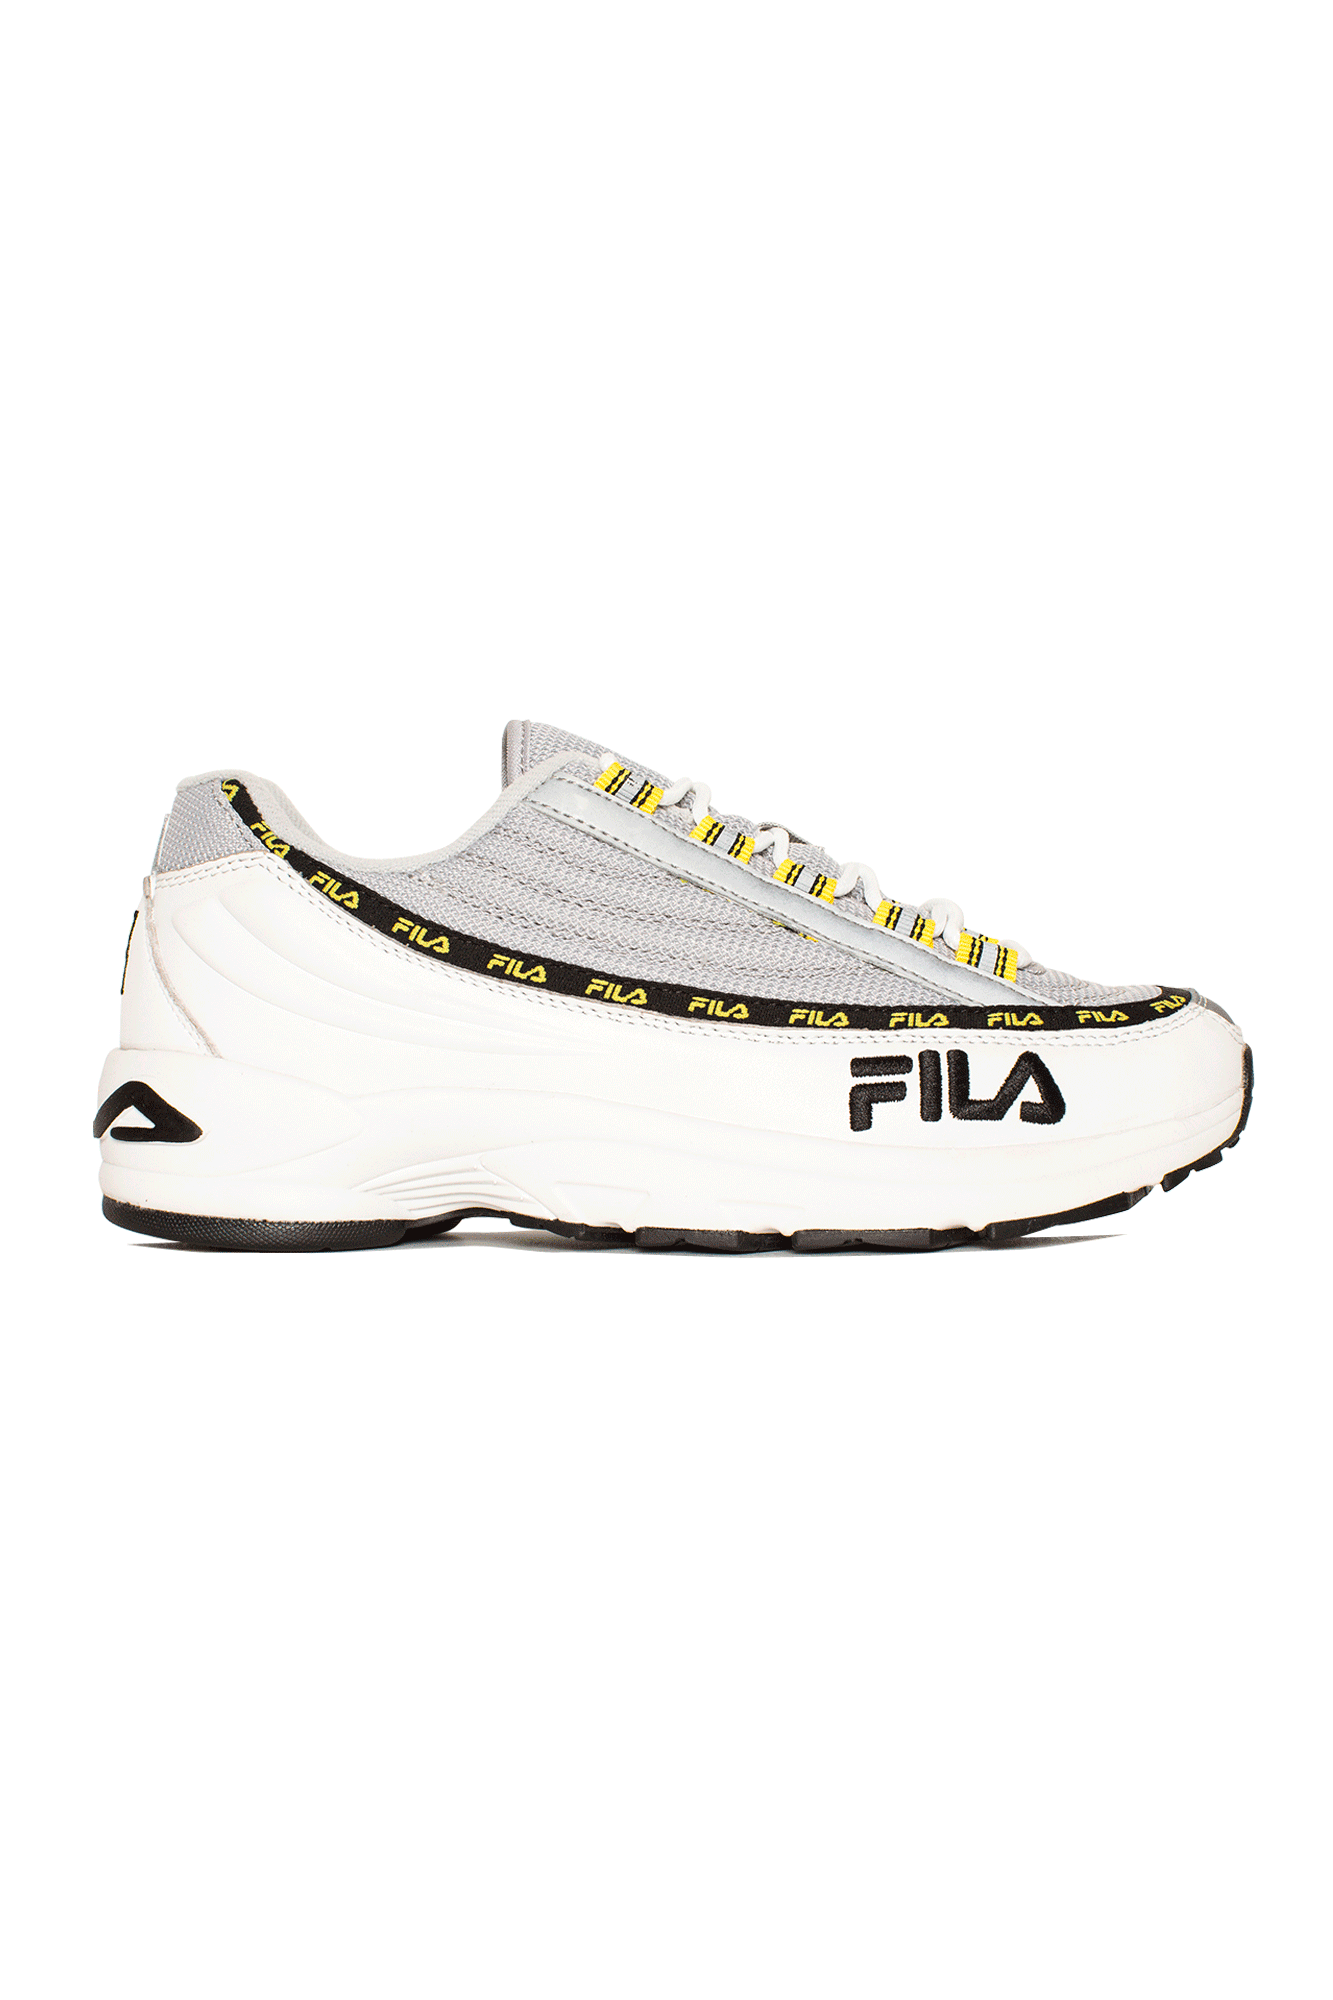 Sneakers Fila Dragster 97 Grey - One Block Down